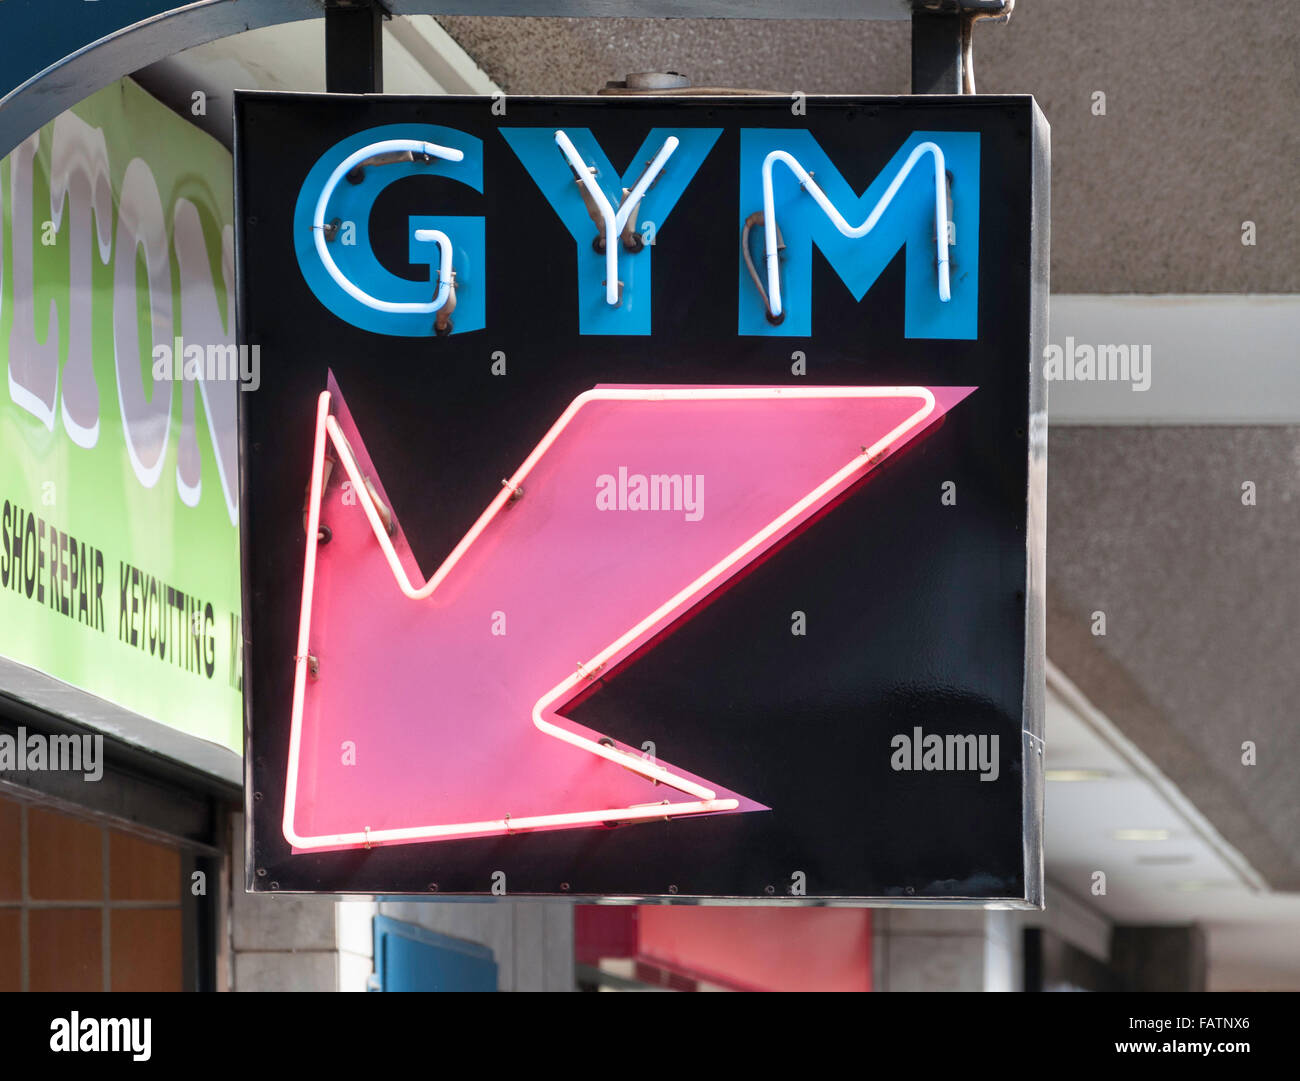 Neon sign for gym, Springs, Ekurhuleni Metropolitan Municipality, Gauteng Province, Republic of South Africa - Stock Image